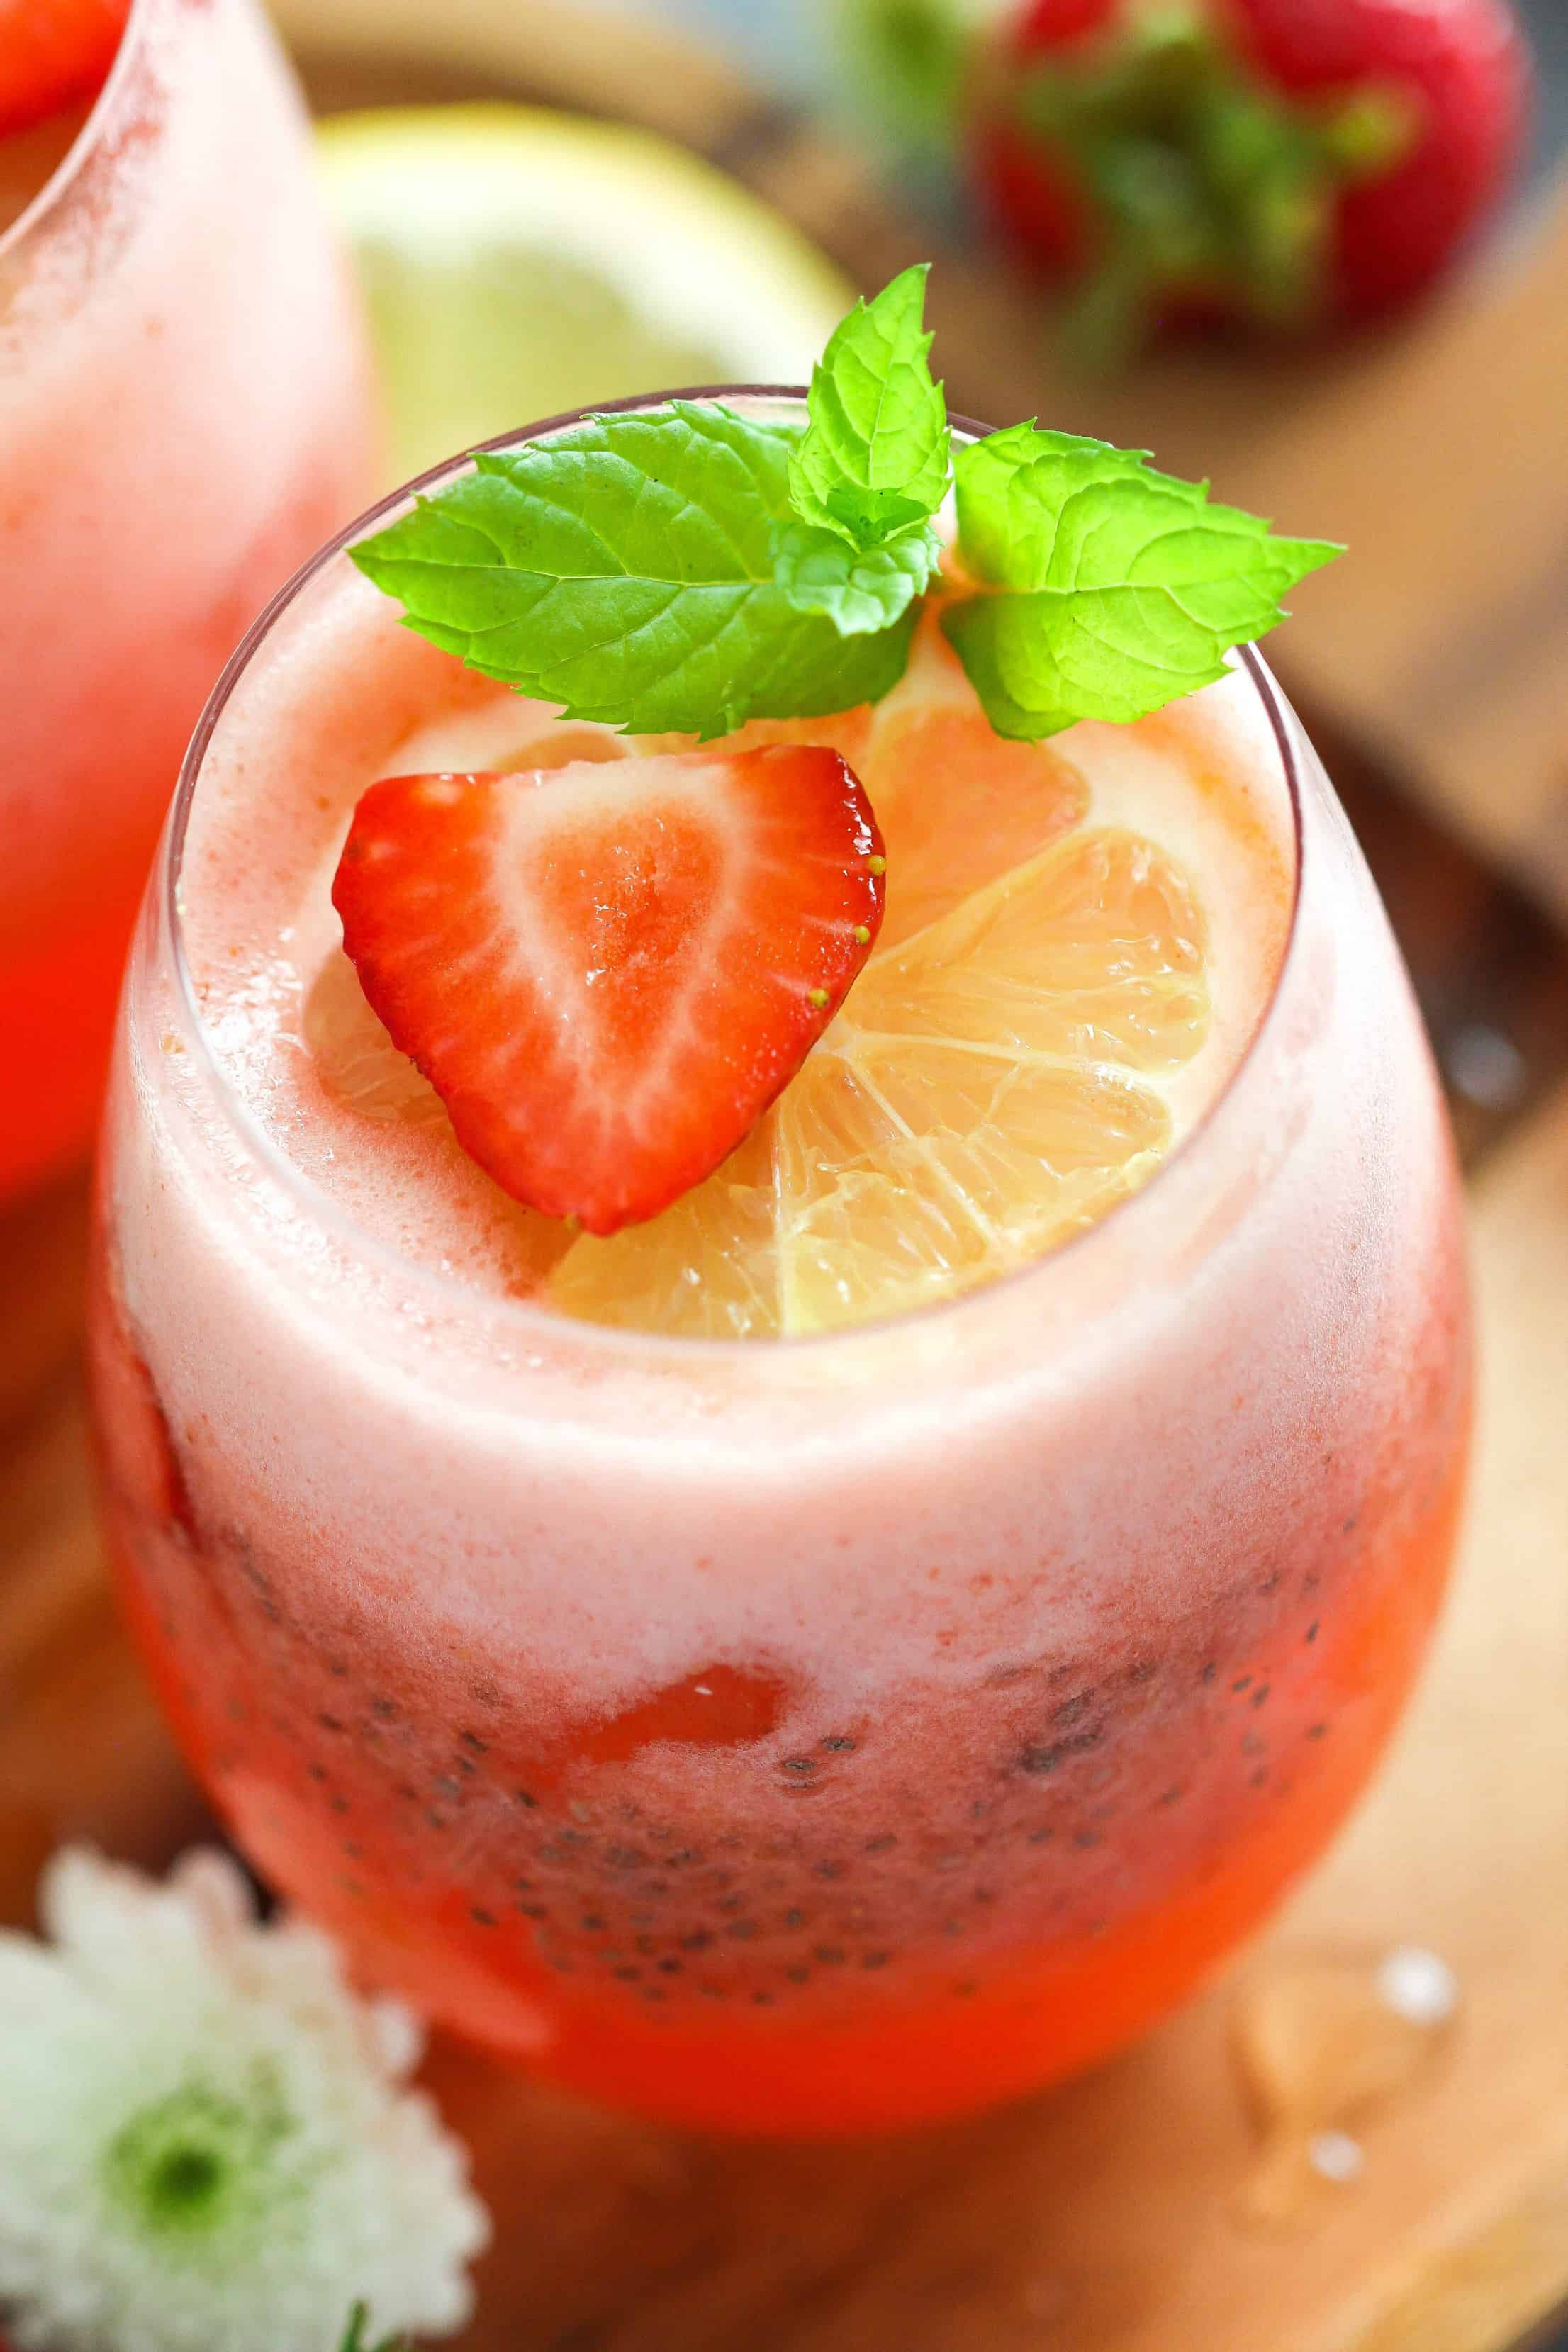 Chia Seed Drink Strawberry Lemonade with Chia Seeds